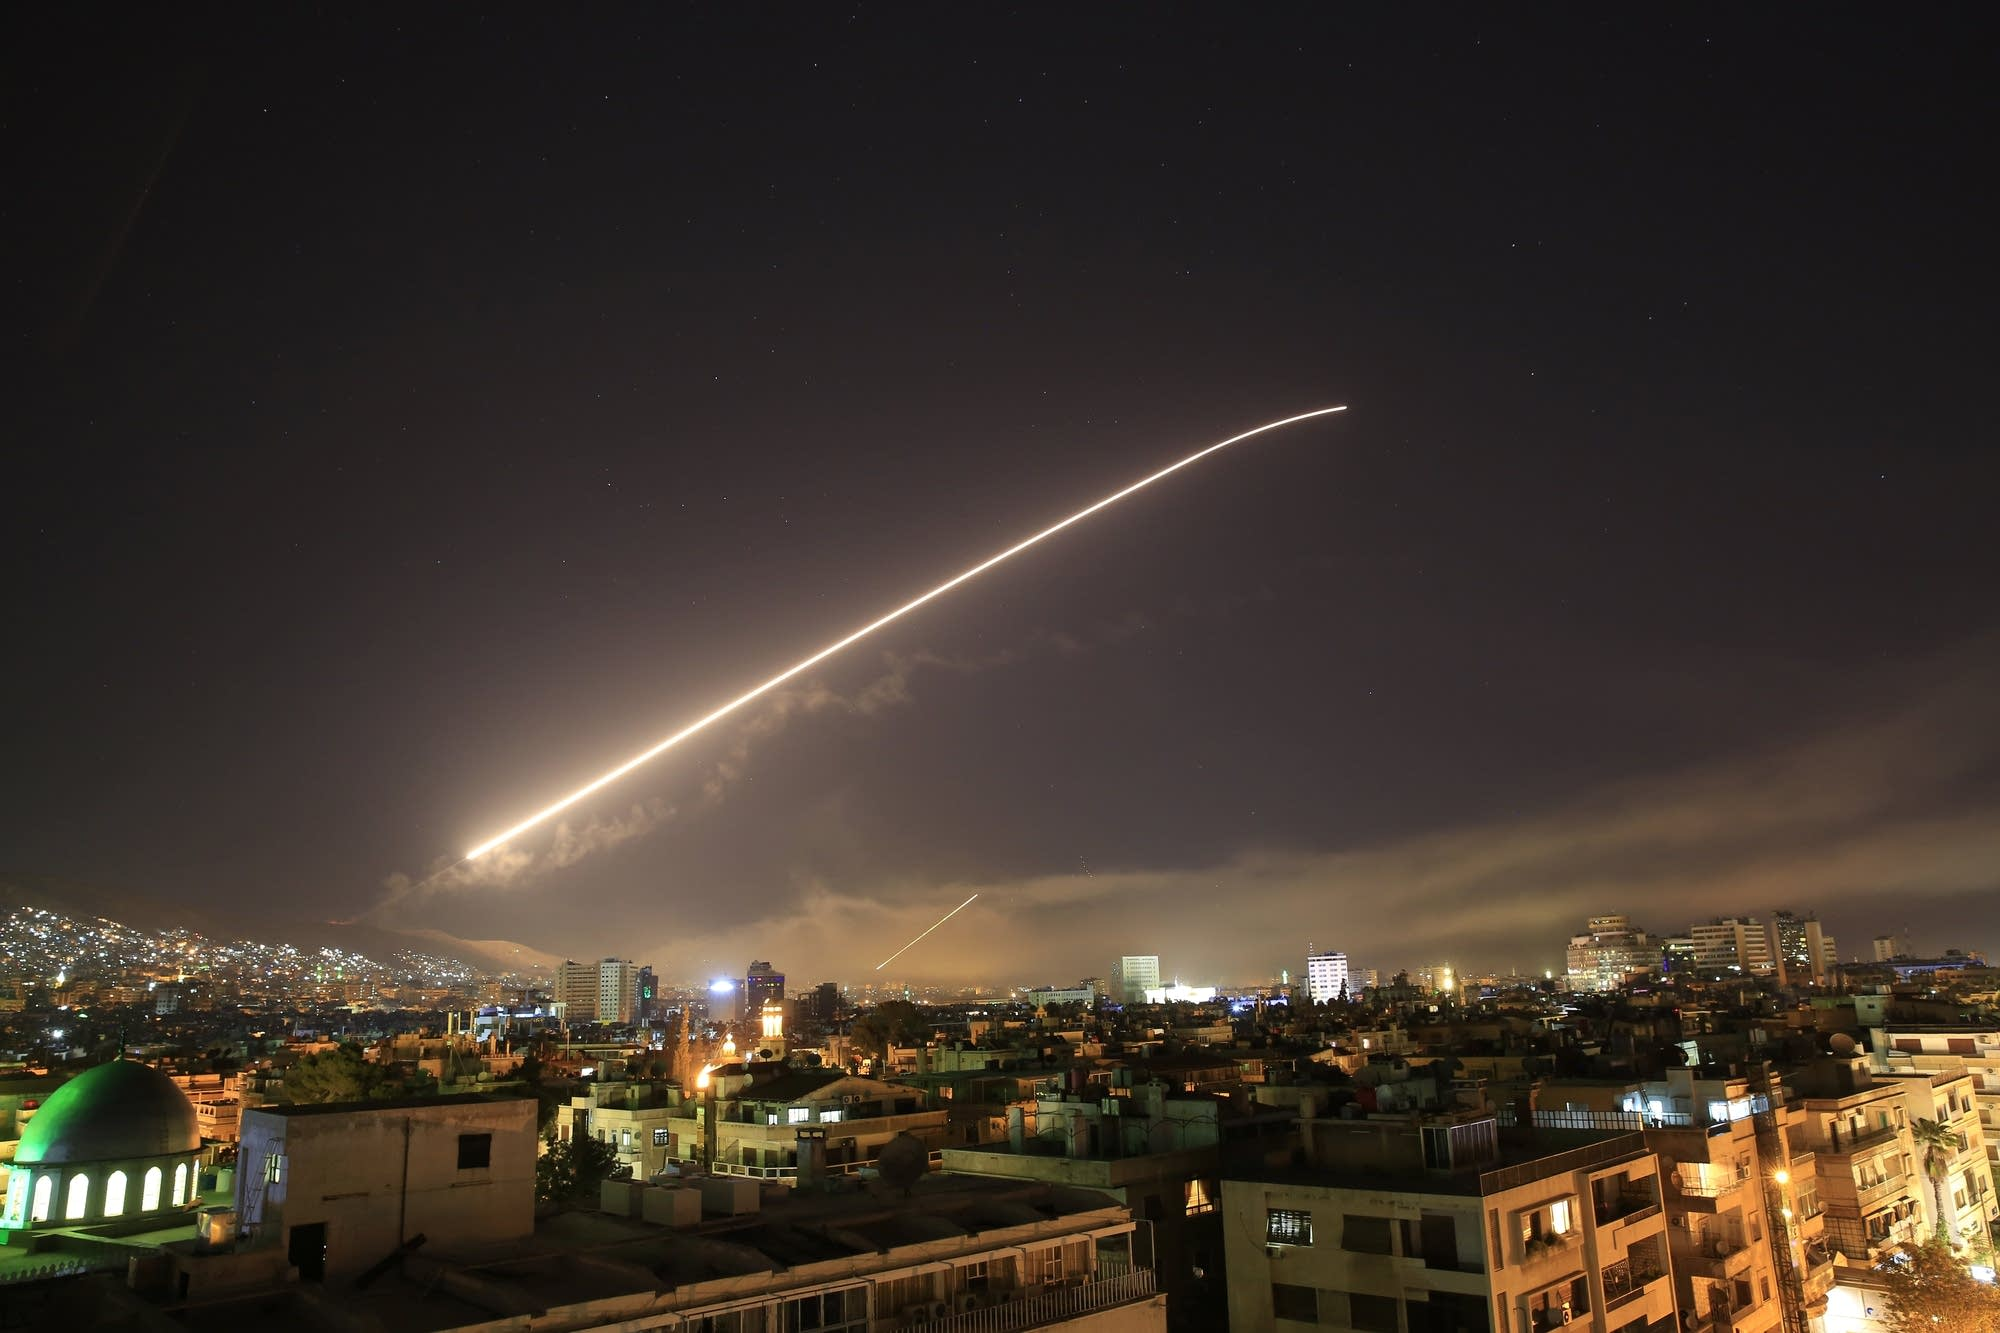 Damascus sky lights up with service to air missile fire